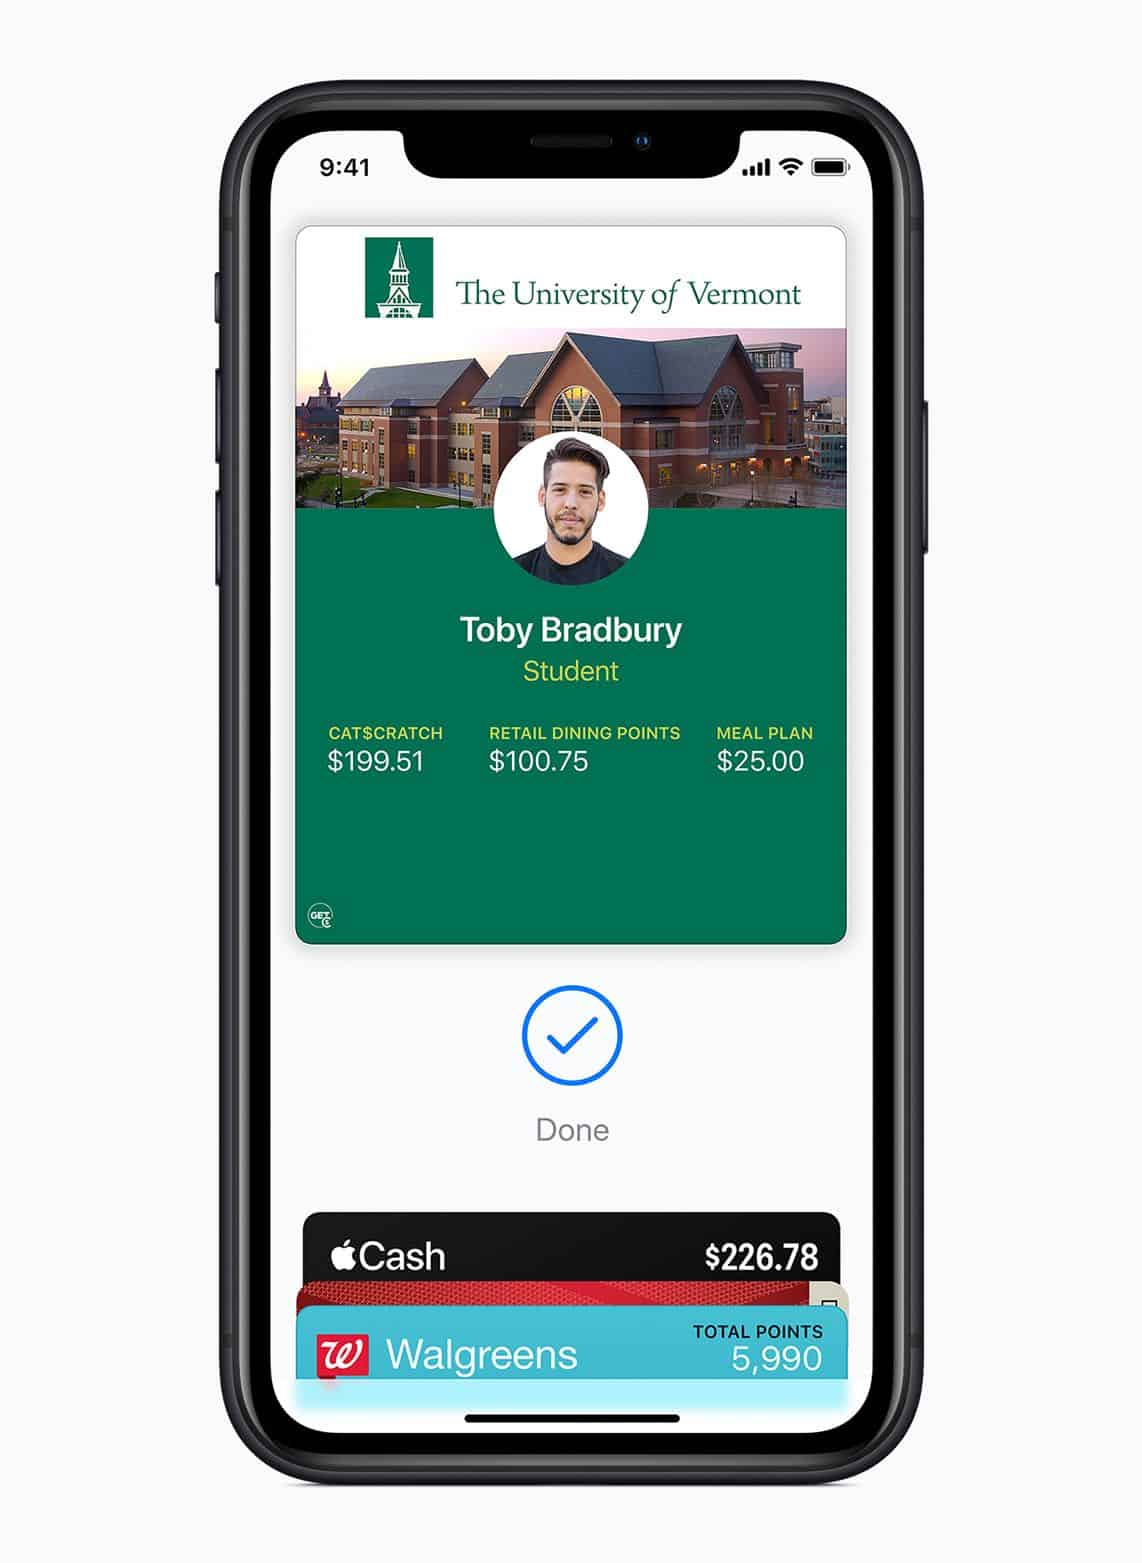 Apple brings student IDs to iPhone and Apple Watch university of vermont student ID screen 081319